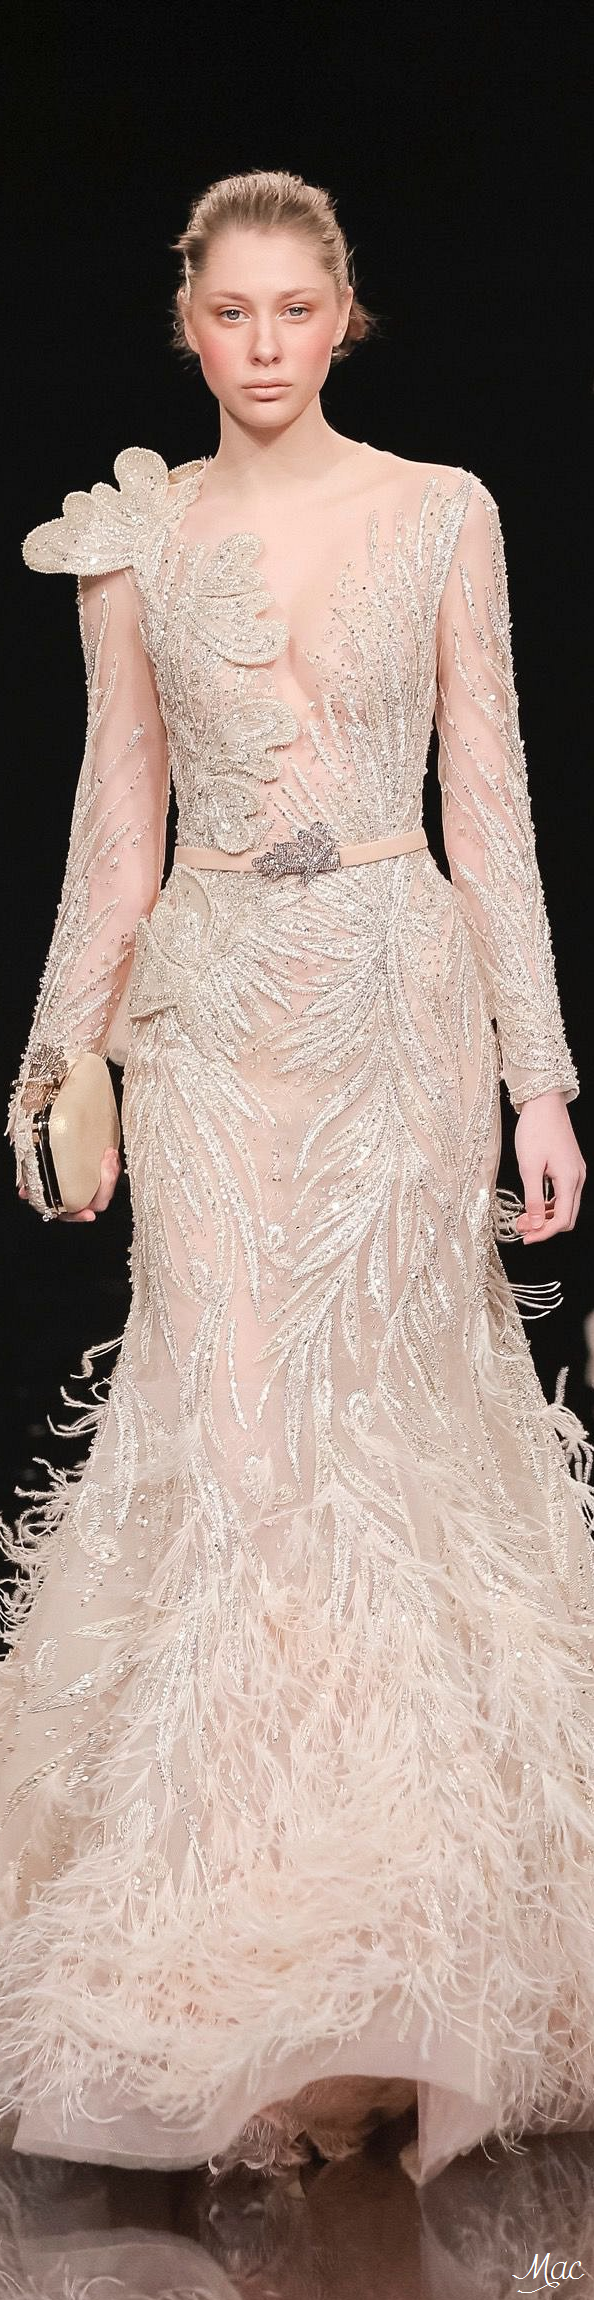 Spring 2017 Haute Couture Ziad Nakad